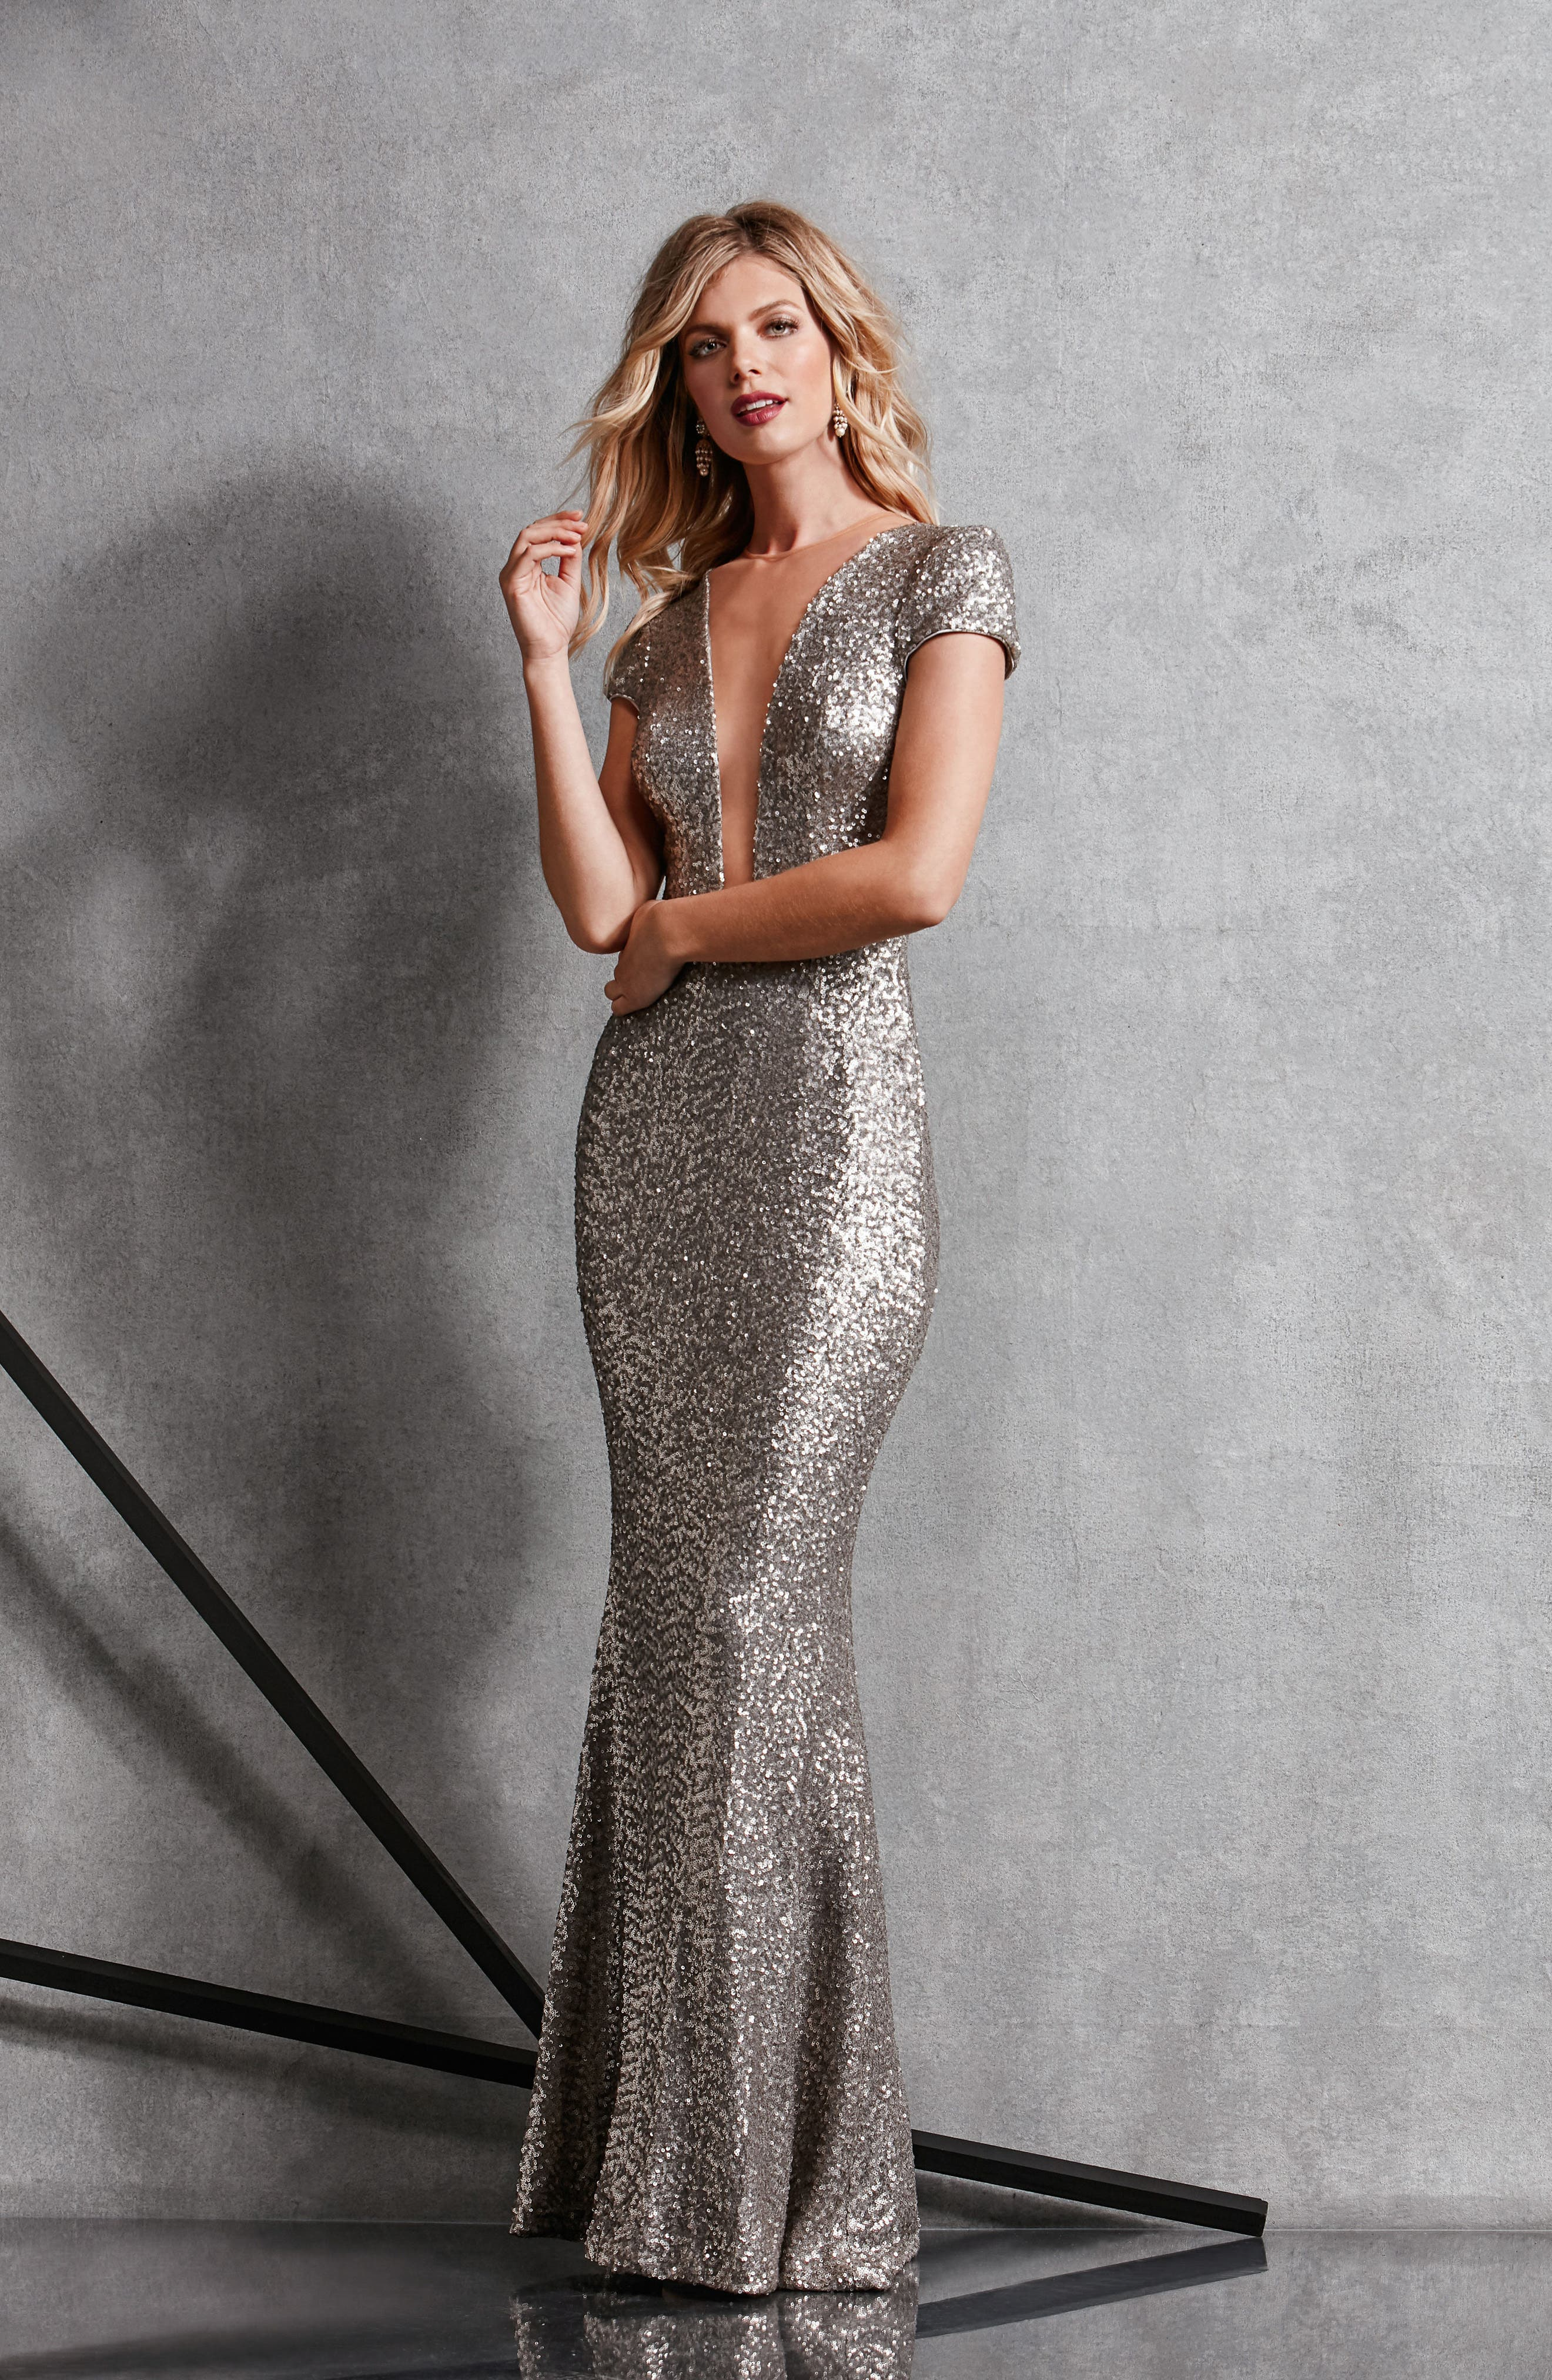 Michelle Sequin Gown,                             Alternate thumbnail 6, color,                             PLATINUM